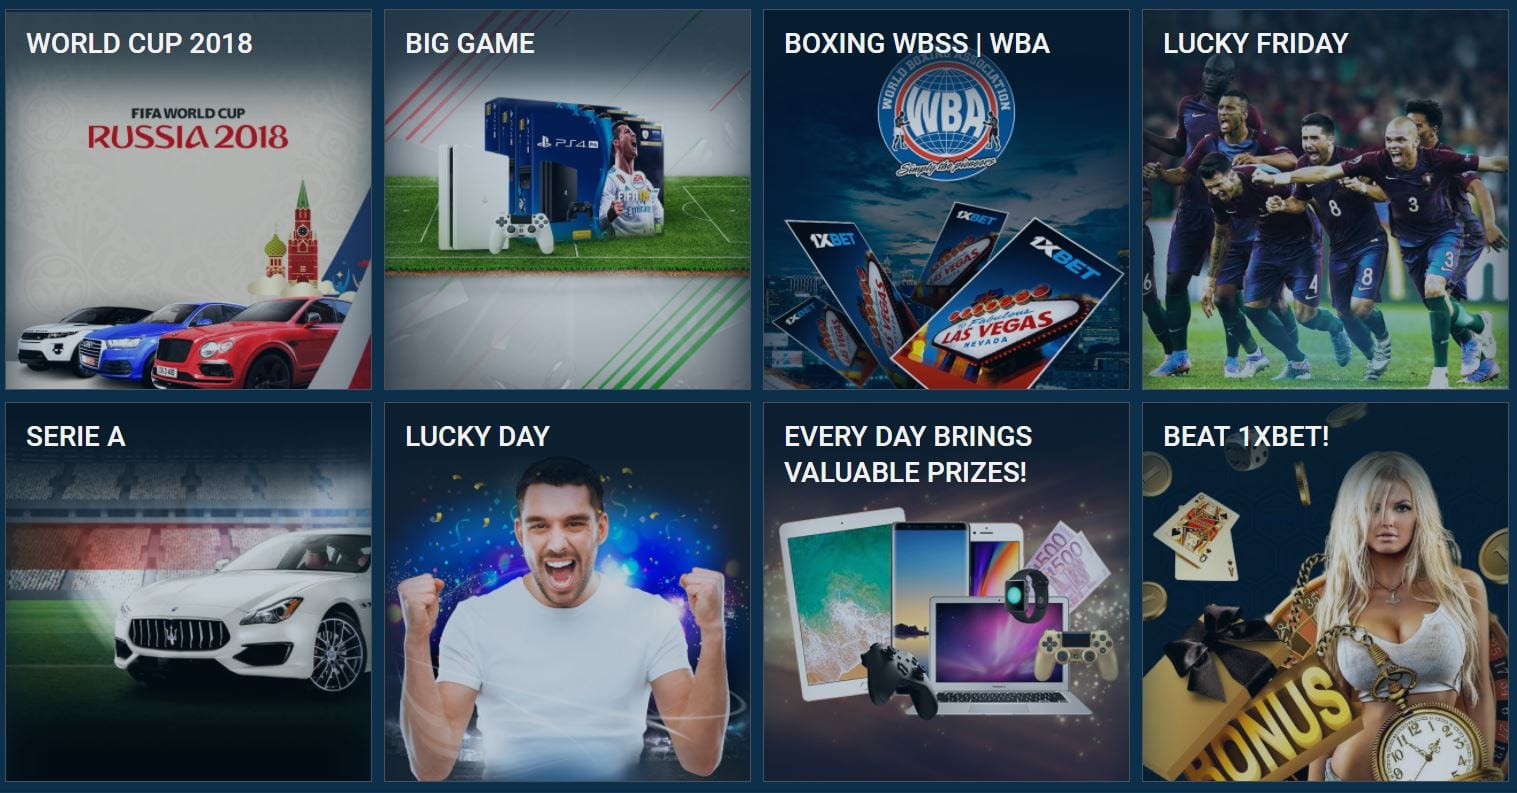 1xBet - Claim Your Free Bets Right Here  Grab A Promo Code Welcome Offer